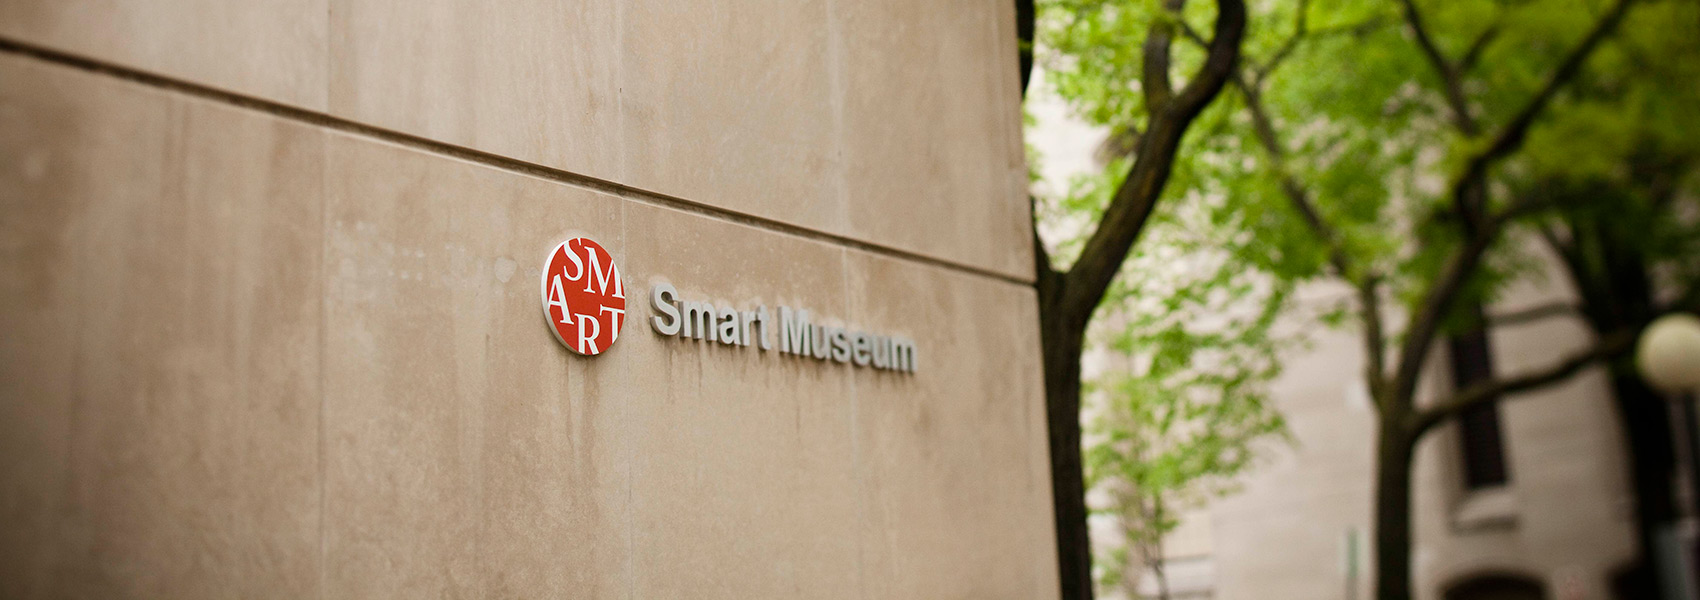 Exterior view of the Smart Museum